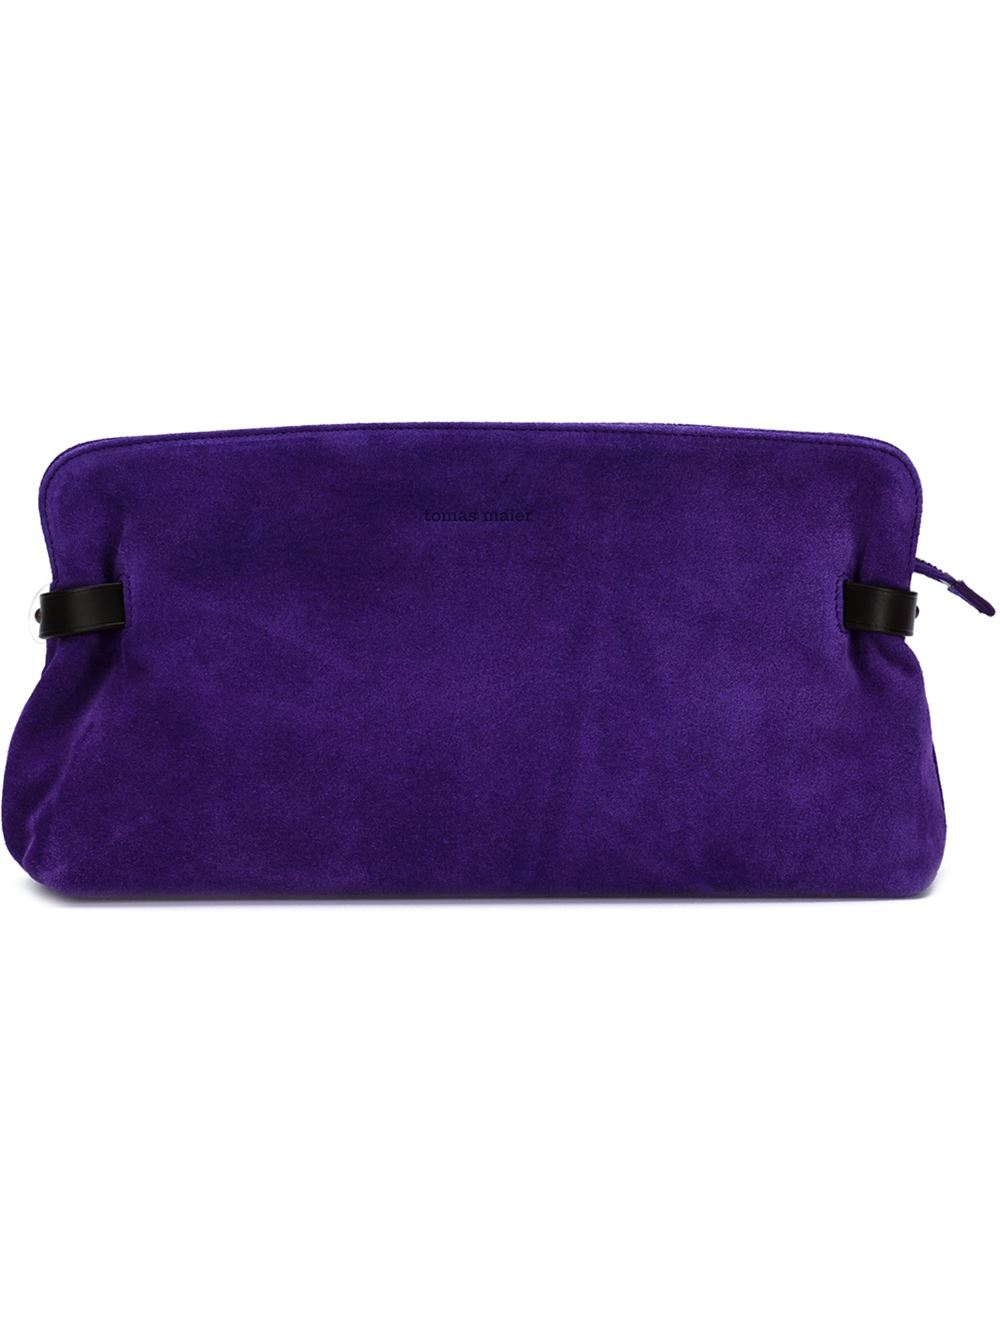 Image Result For Clutch Purse